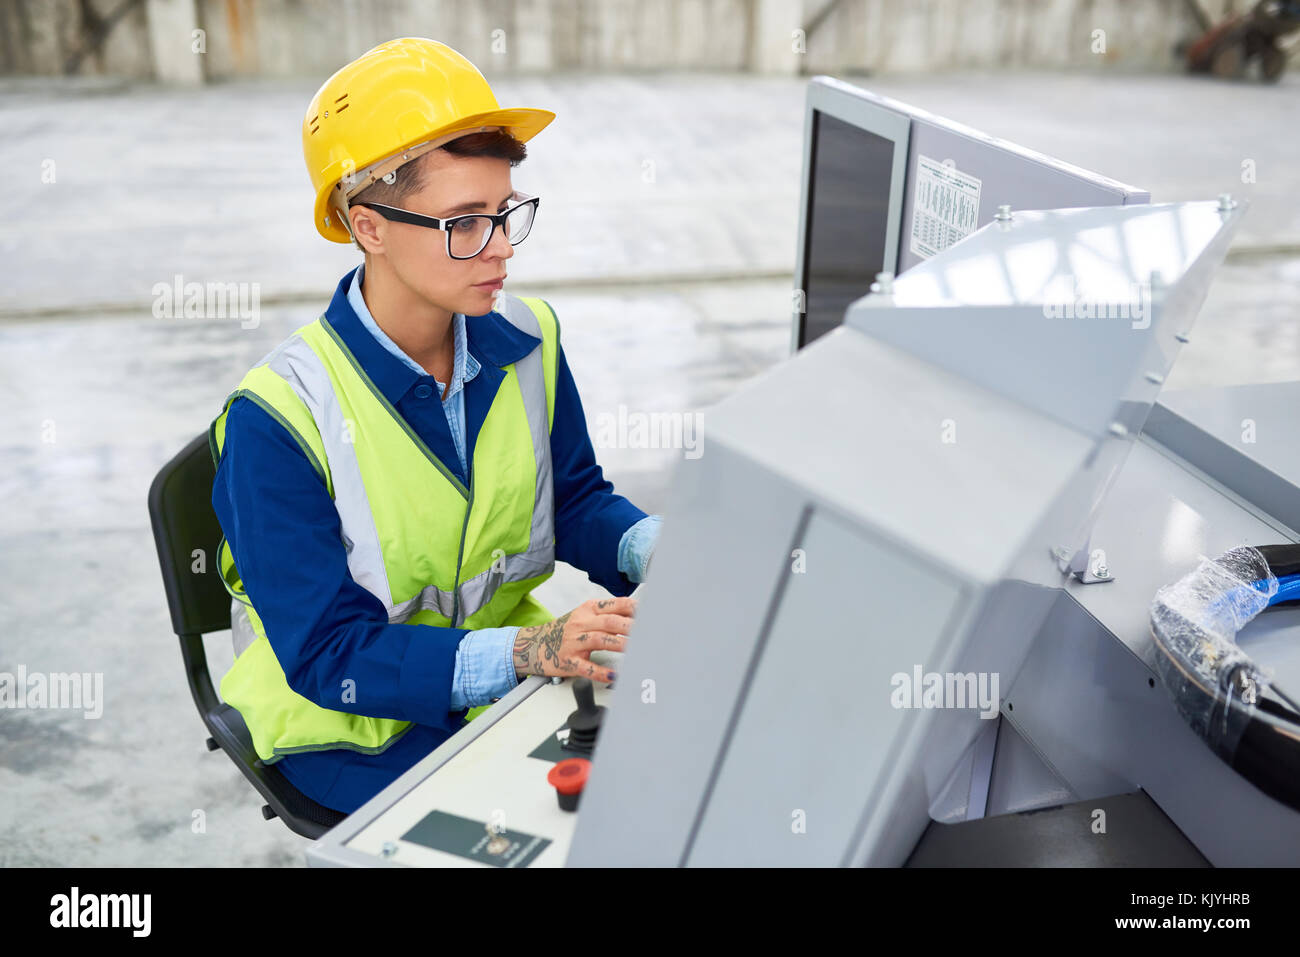 Concentrated factory employee in green waistcoat using technical machine while working on operator dashboard at - Stock Image